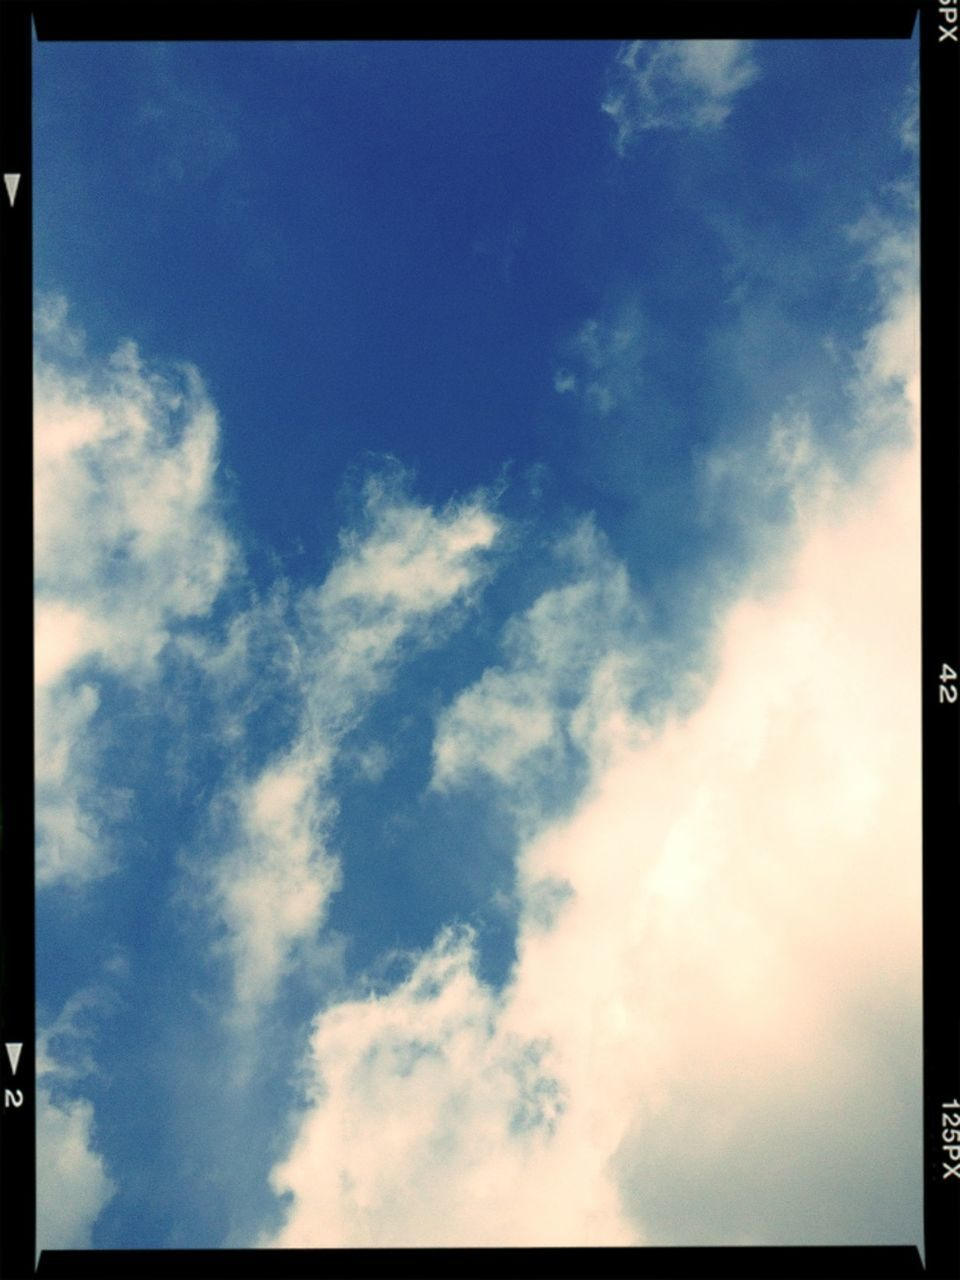 nature, beauty in nature, sky, low angle view, backgrounds, outdoors, scenics, day, tranquility, no people, blue, full frame, cloud - sky, sky only